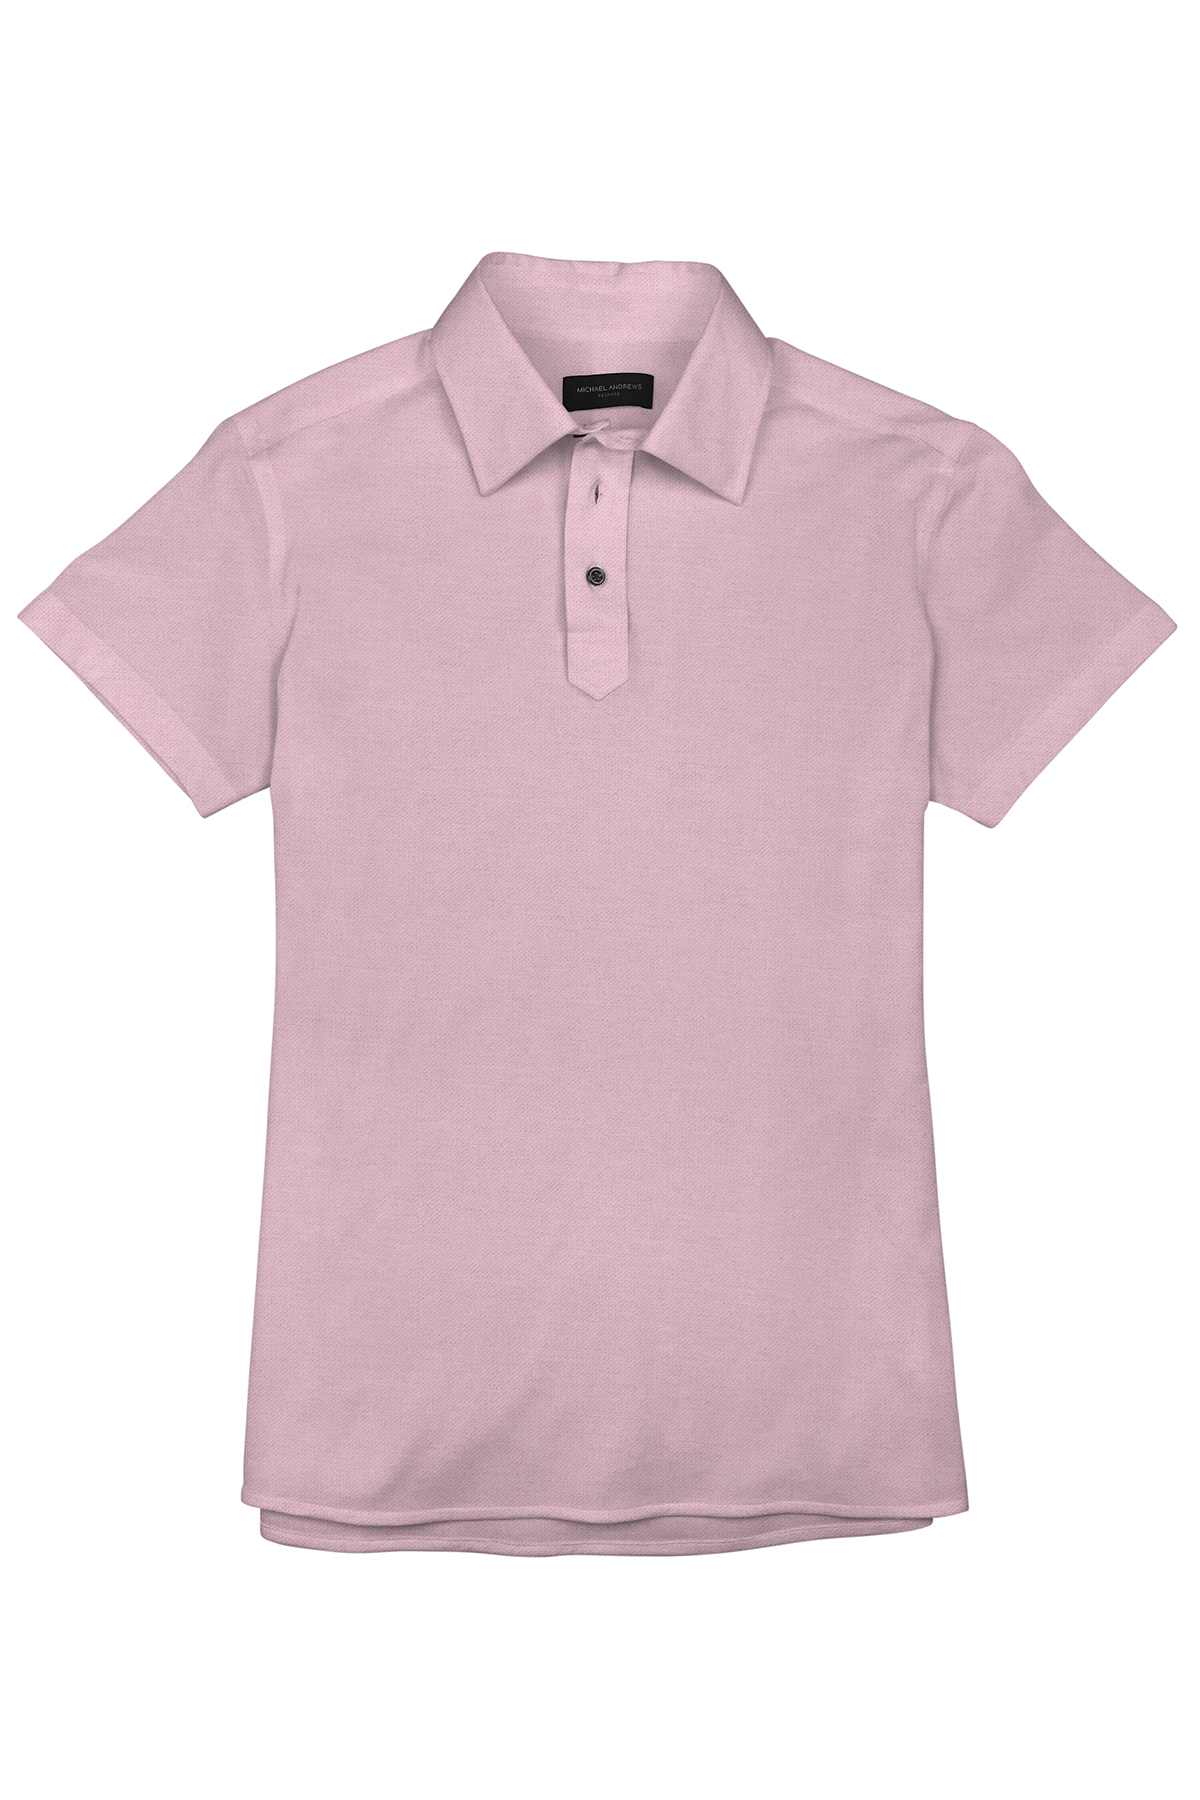 Dark Millennial Pink Pique Short Sleeve Polo Shirt